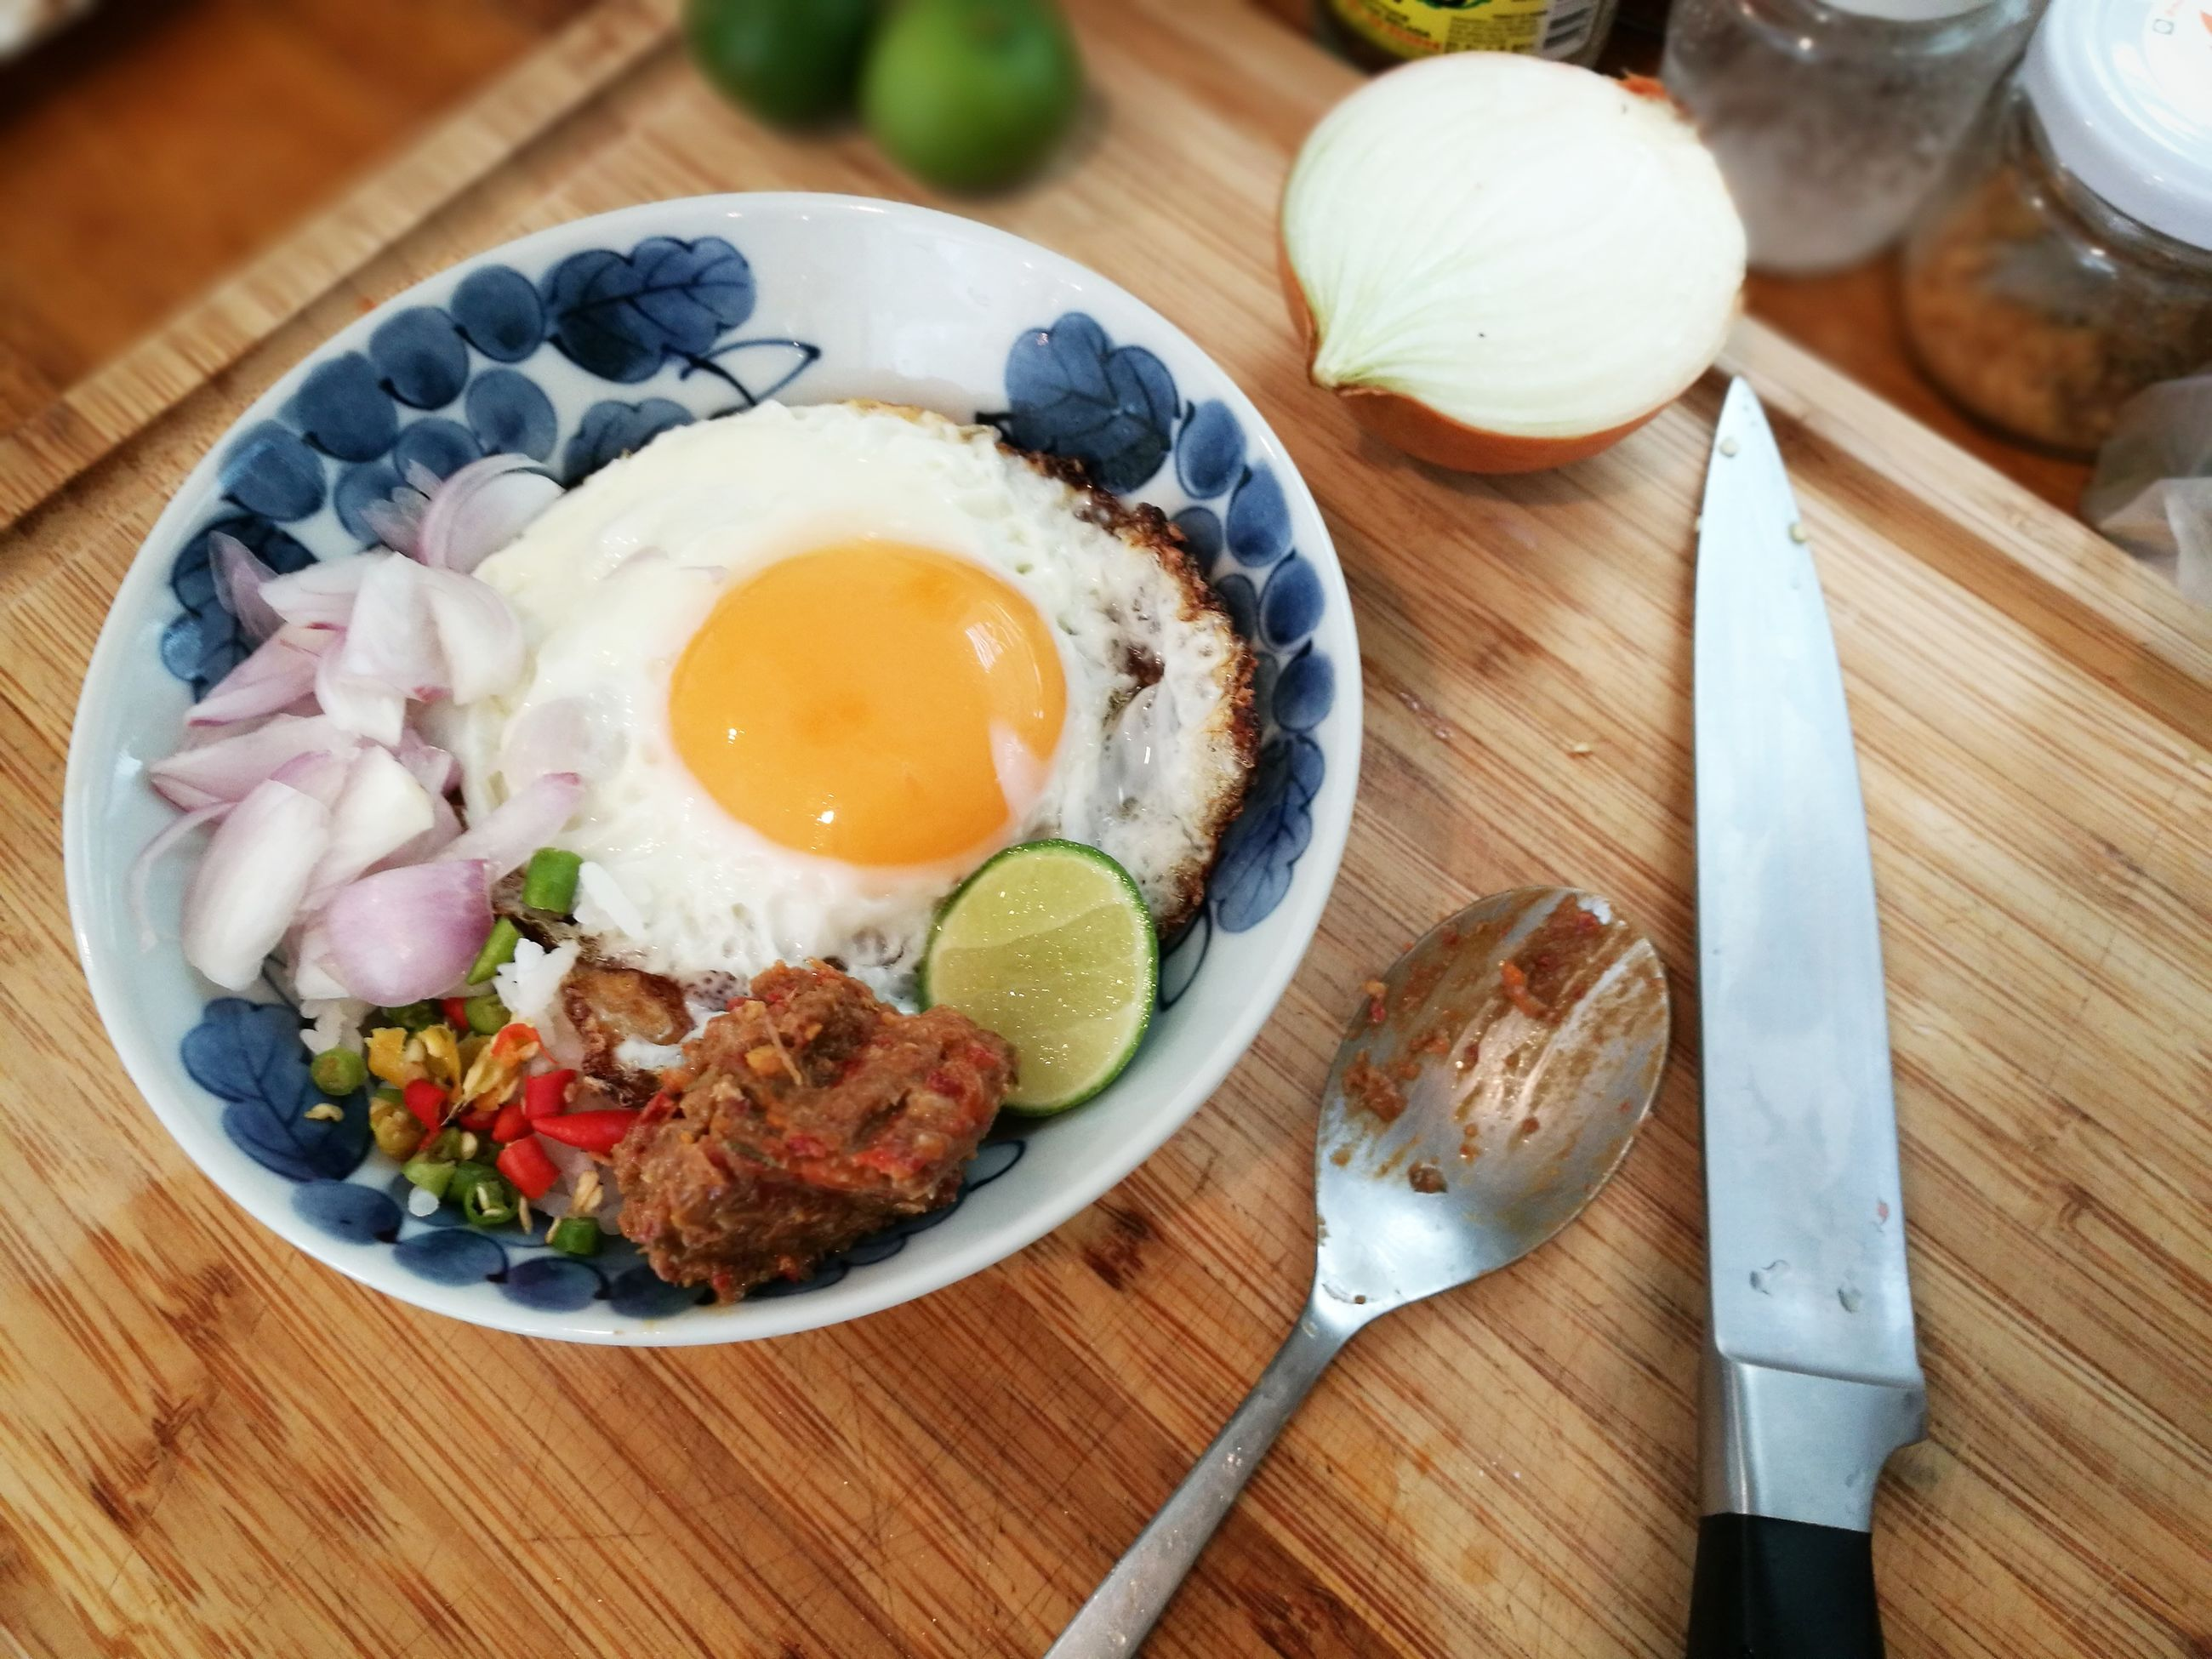 food and drink, egg, food, high angle view, table, indoors, freshness, ready-to-eat, no people, fried egg, plate, healthy eating, bowl, close-up, breakfast, chopsticks, egg yolk, day